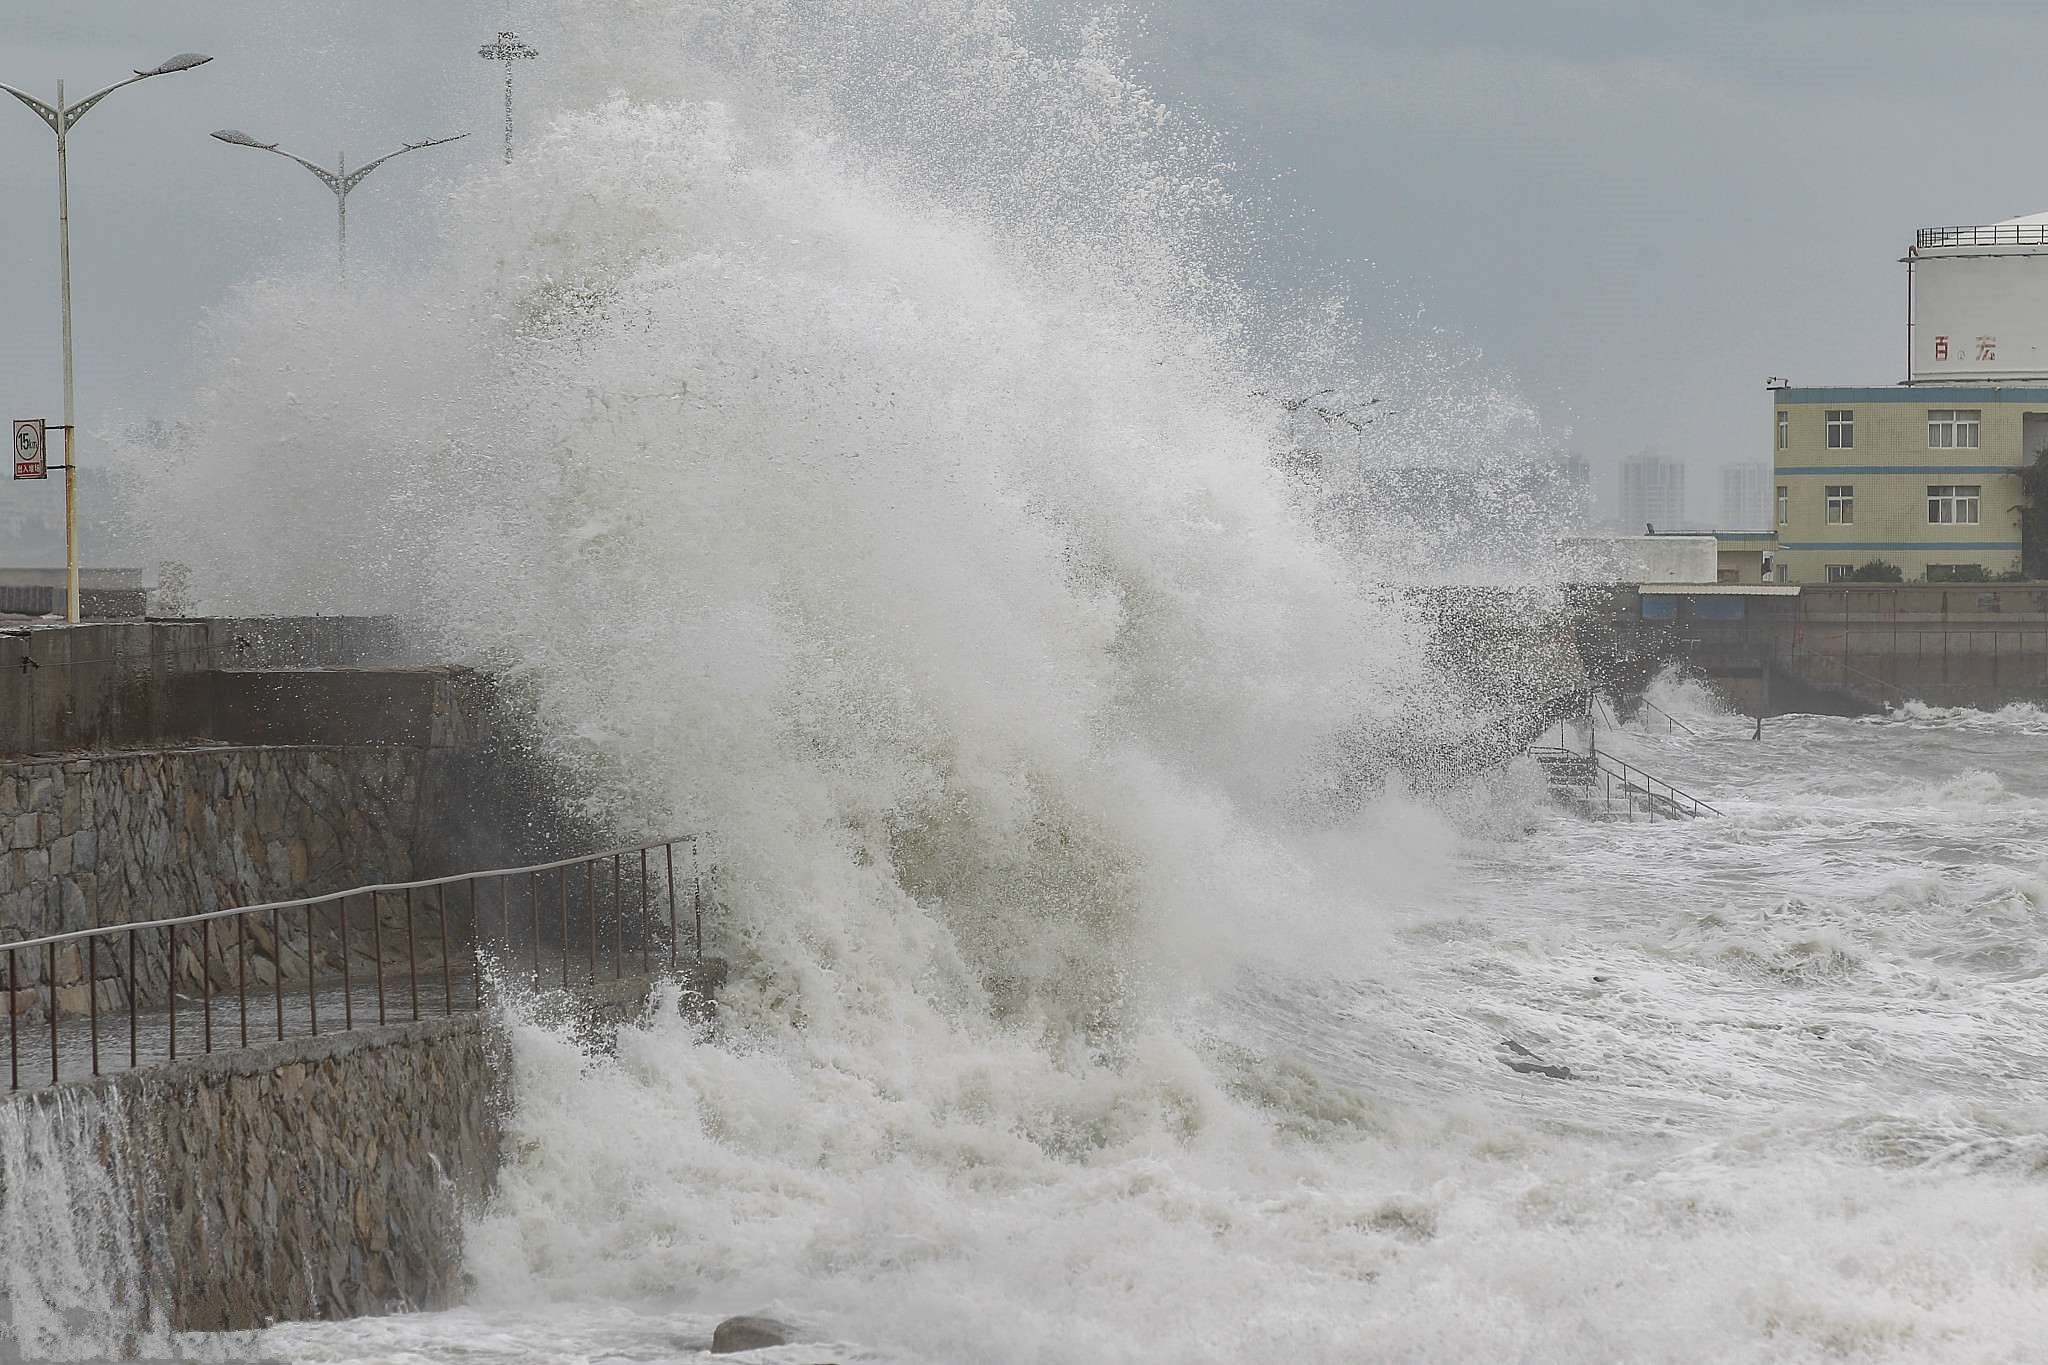 Southern China on high alert as super typhoon nears